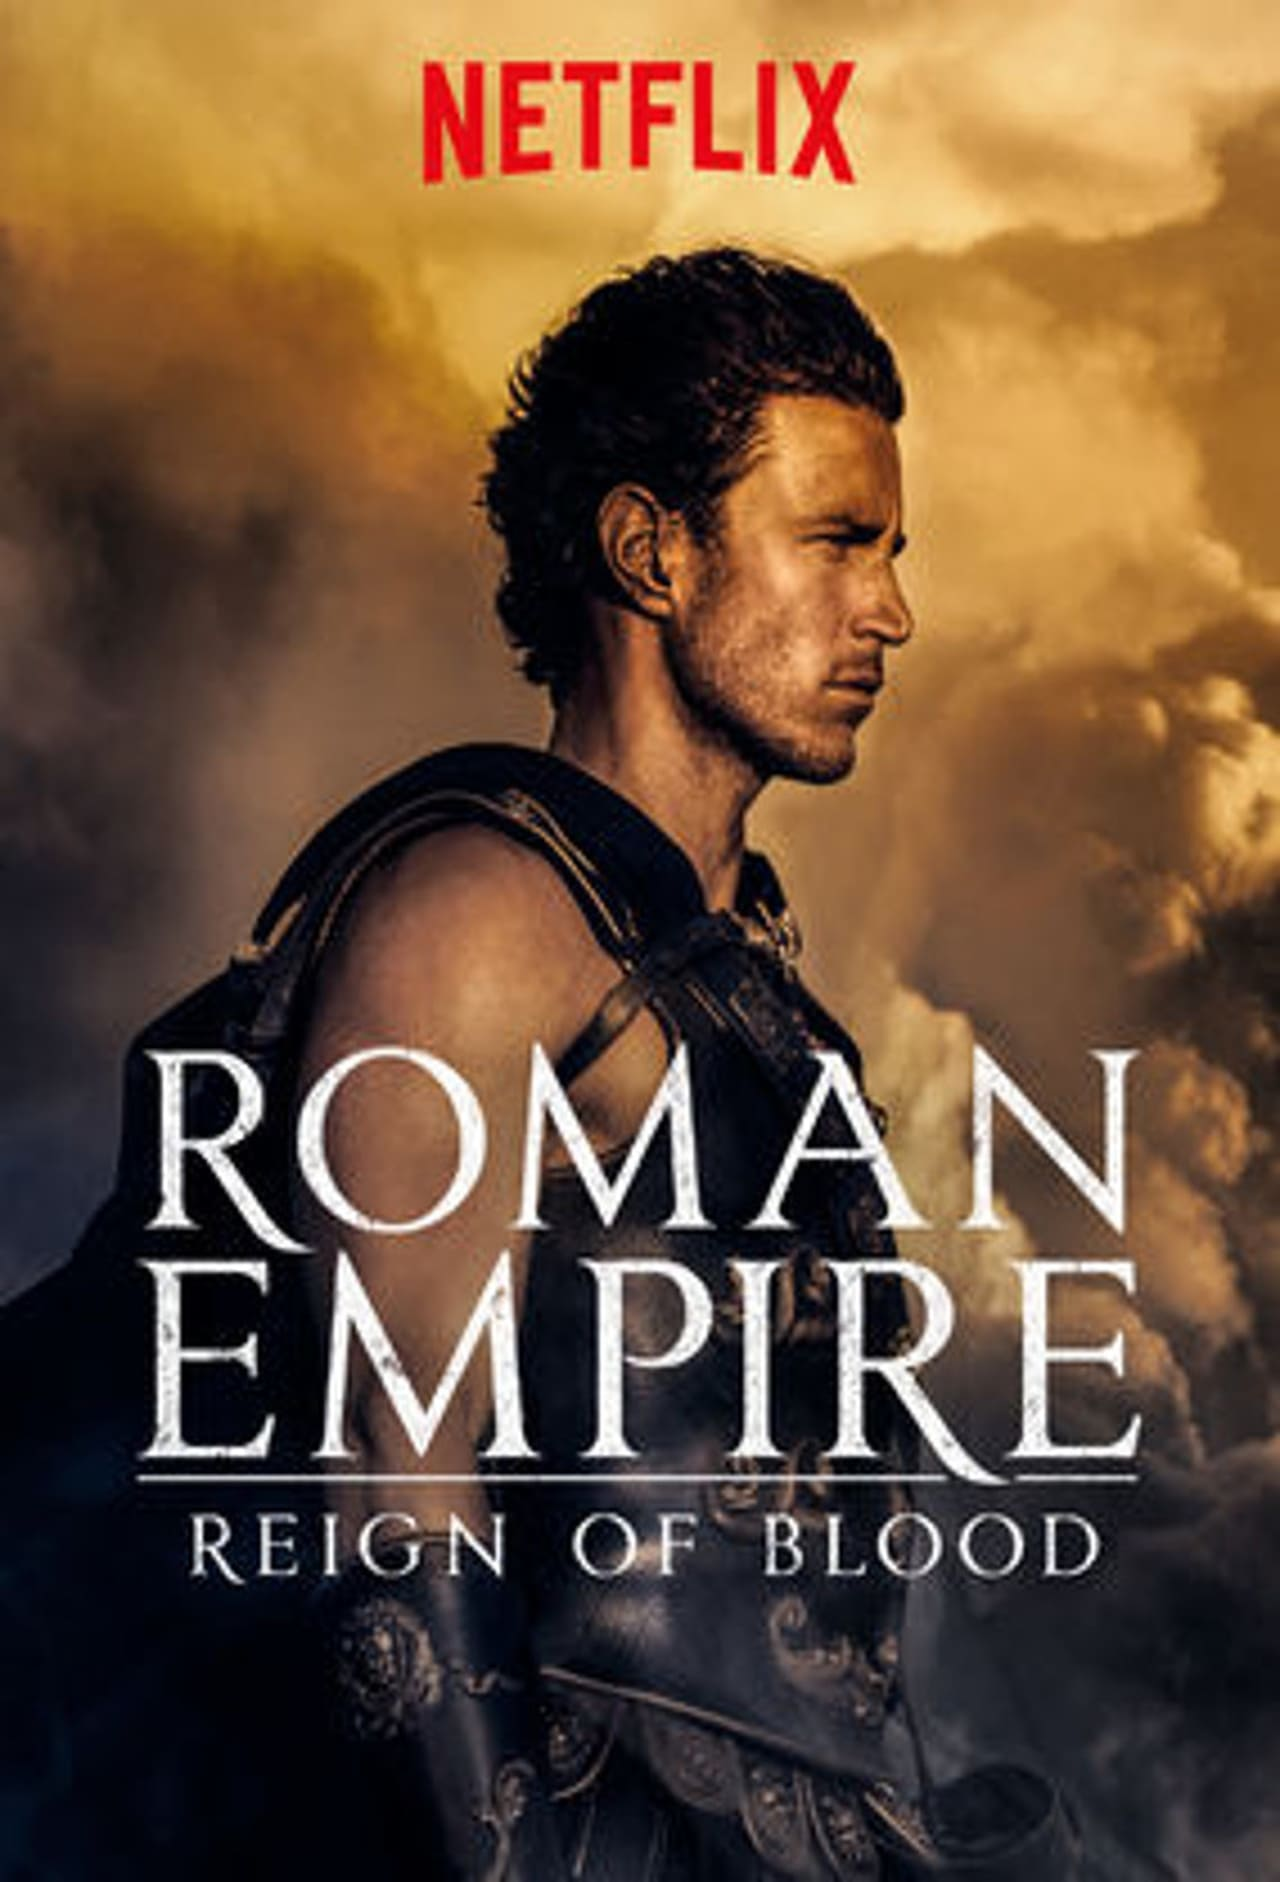 Putlocker Roman Empire Season 1 (2016)